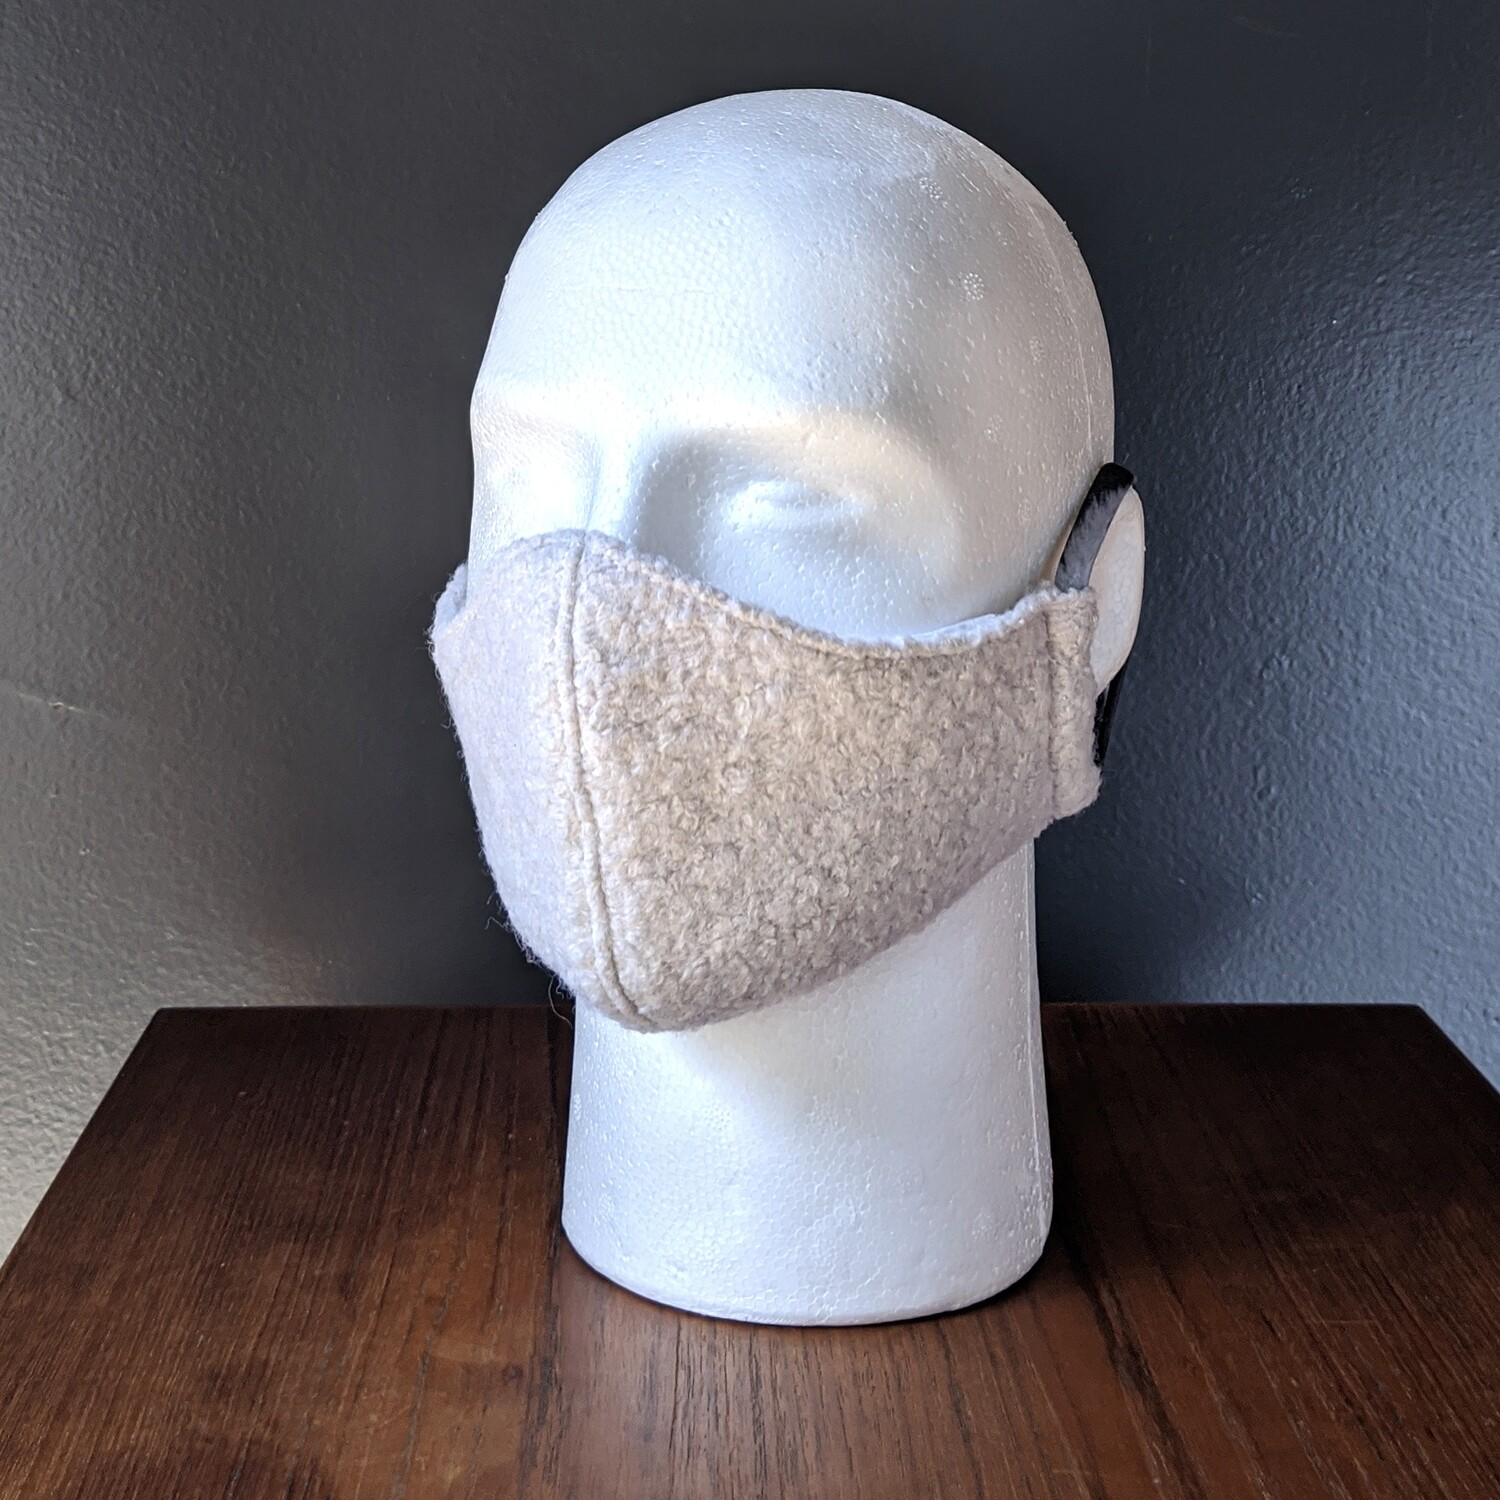 Woolly Sheep Costume Face Mask, Pride, Mardi Gras, Halloween. Small, Unisex, Reusable, Double Layer for Smog, Pollen, Dust, Smoke. Made in USA